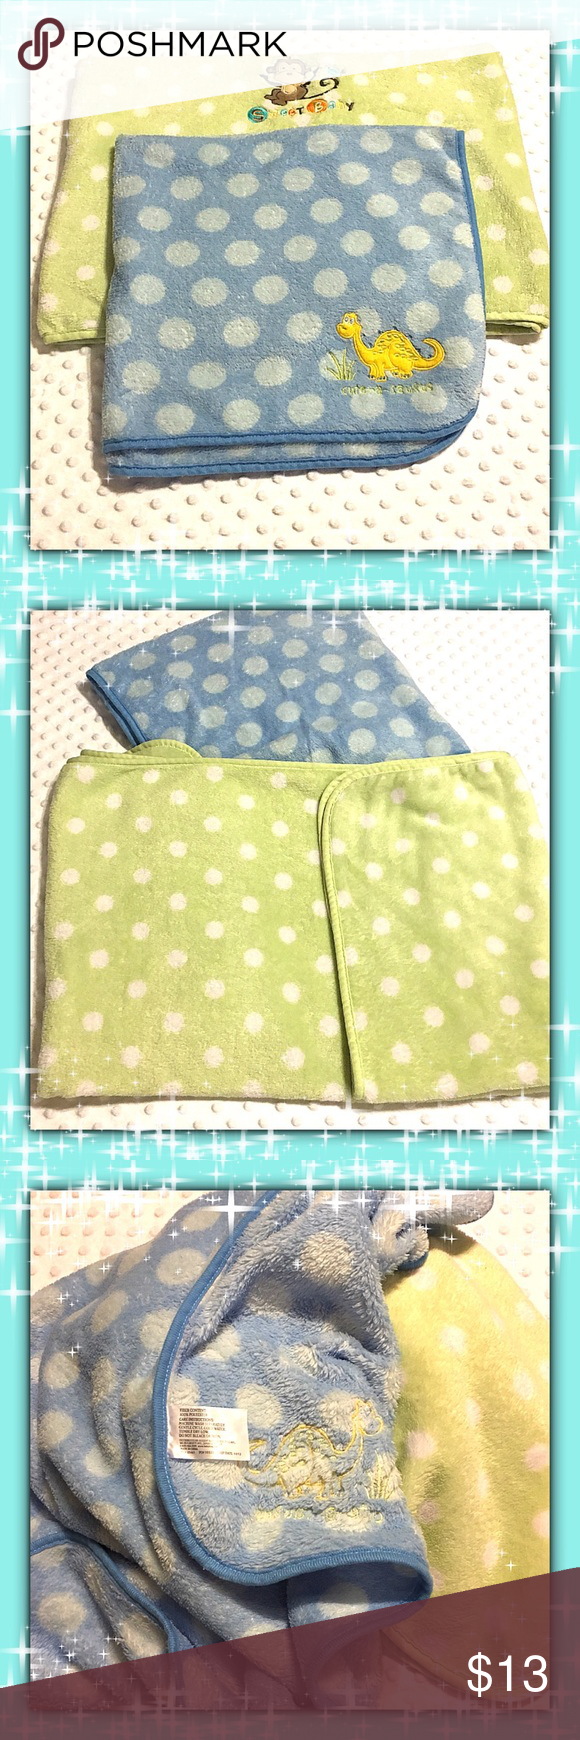 Baby Blanket Bundle Two 100 Polyester Baby Blankets Like New Excellent Condition Accessories Baby Blanket Baby Blanket